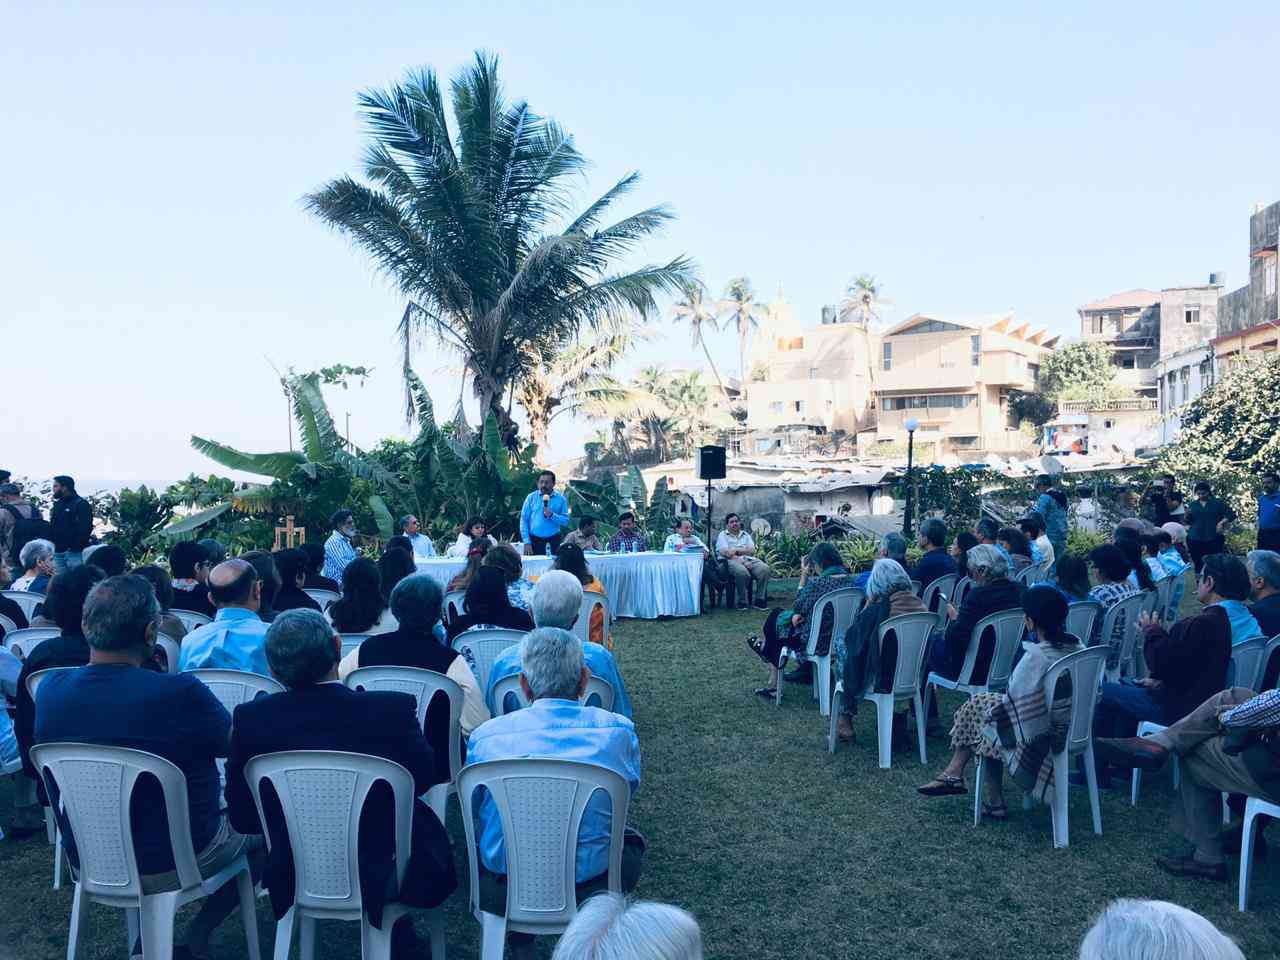 Residents of Breach Candy and Worli organised a public meeting on February 9 to get urban experts and civic officials to share information about the coastal road with citizens. (Photo credit: Citizens for Responsible Development).